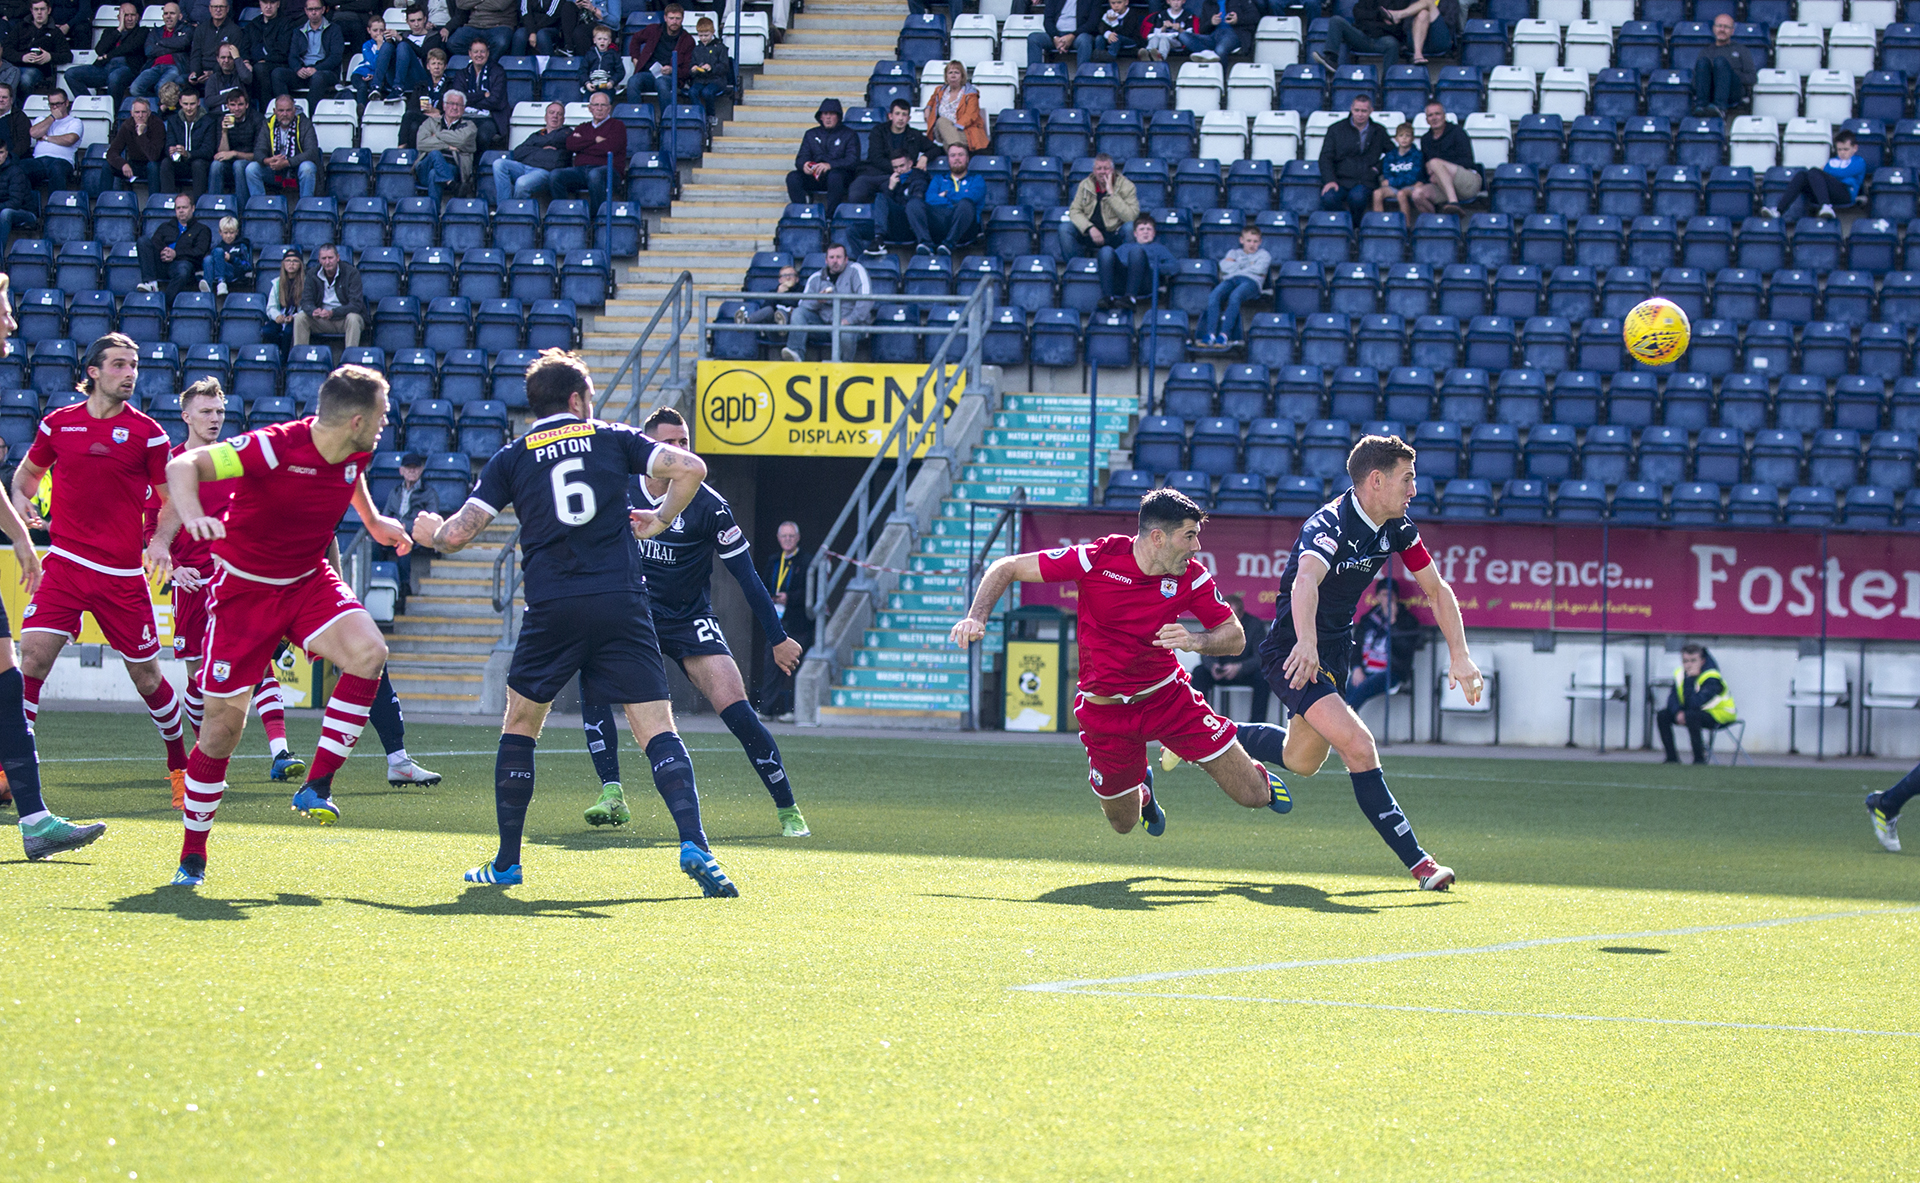 Michael Wilde heads The Nomads ahead in the 46th minute © NCM Media